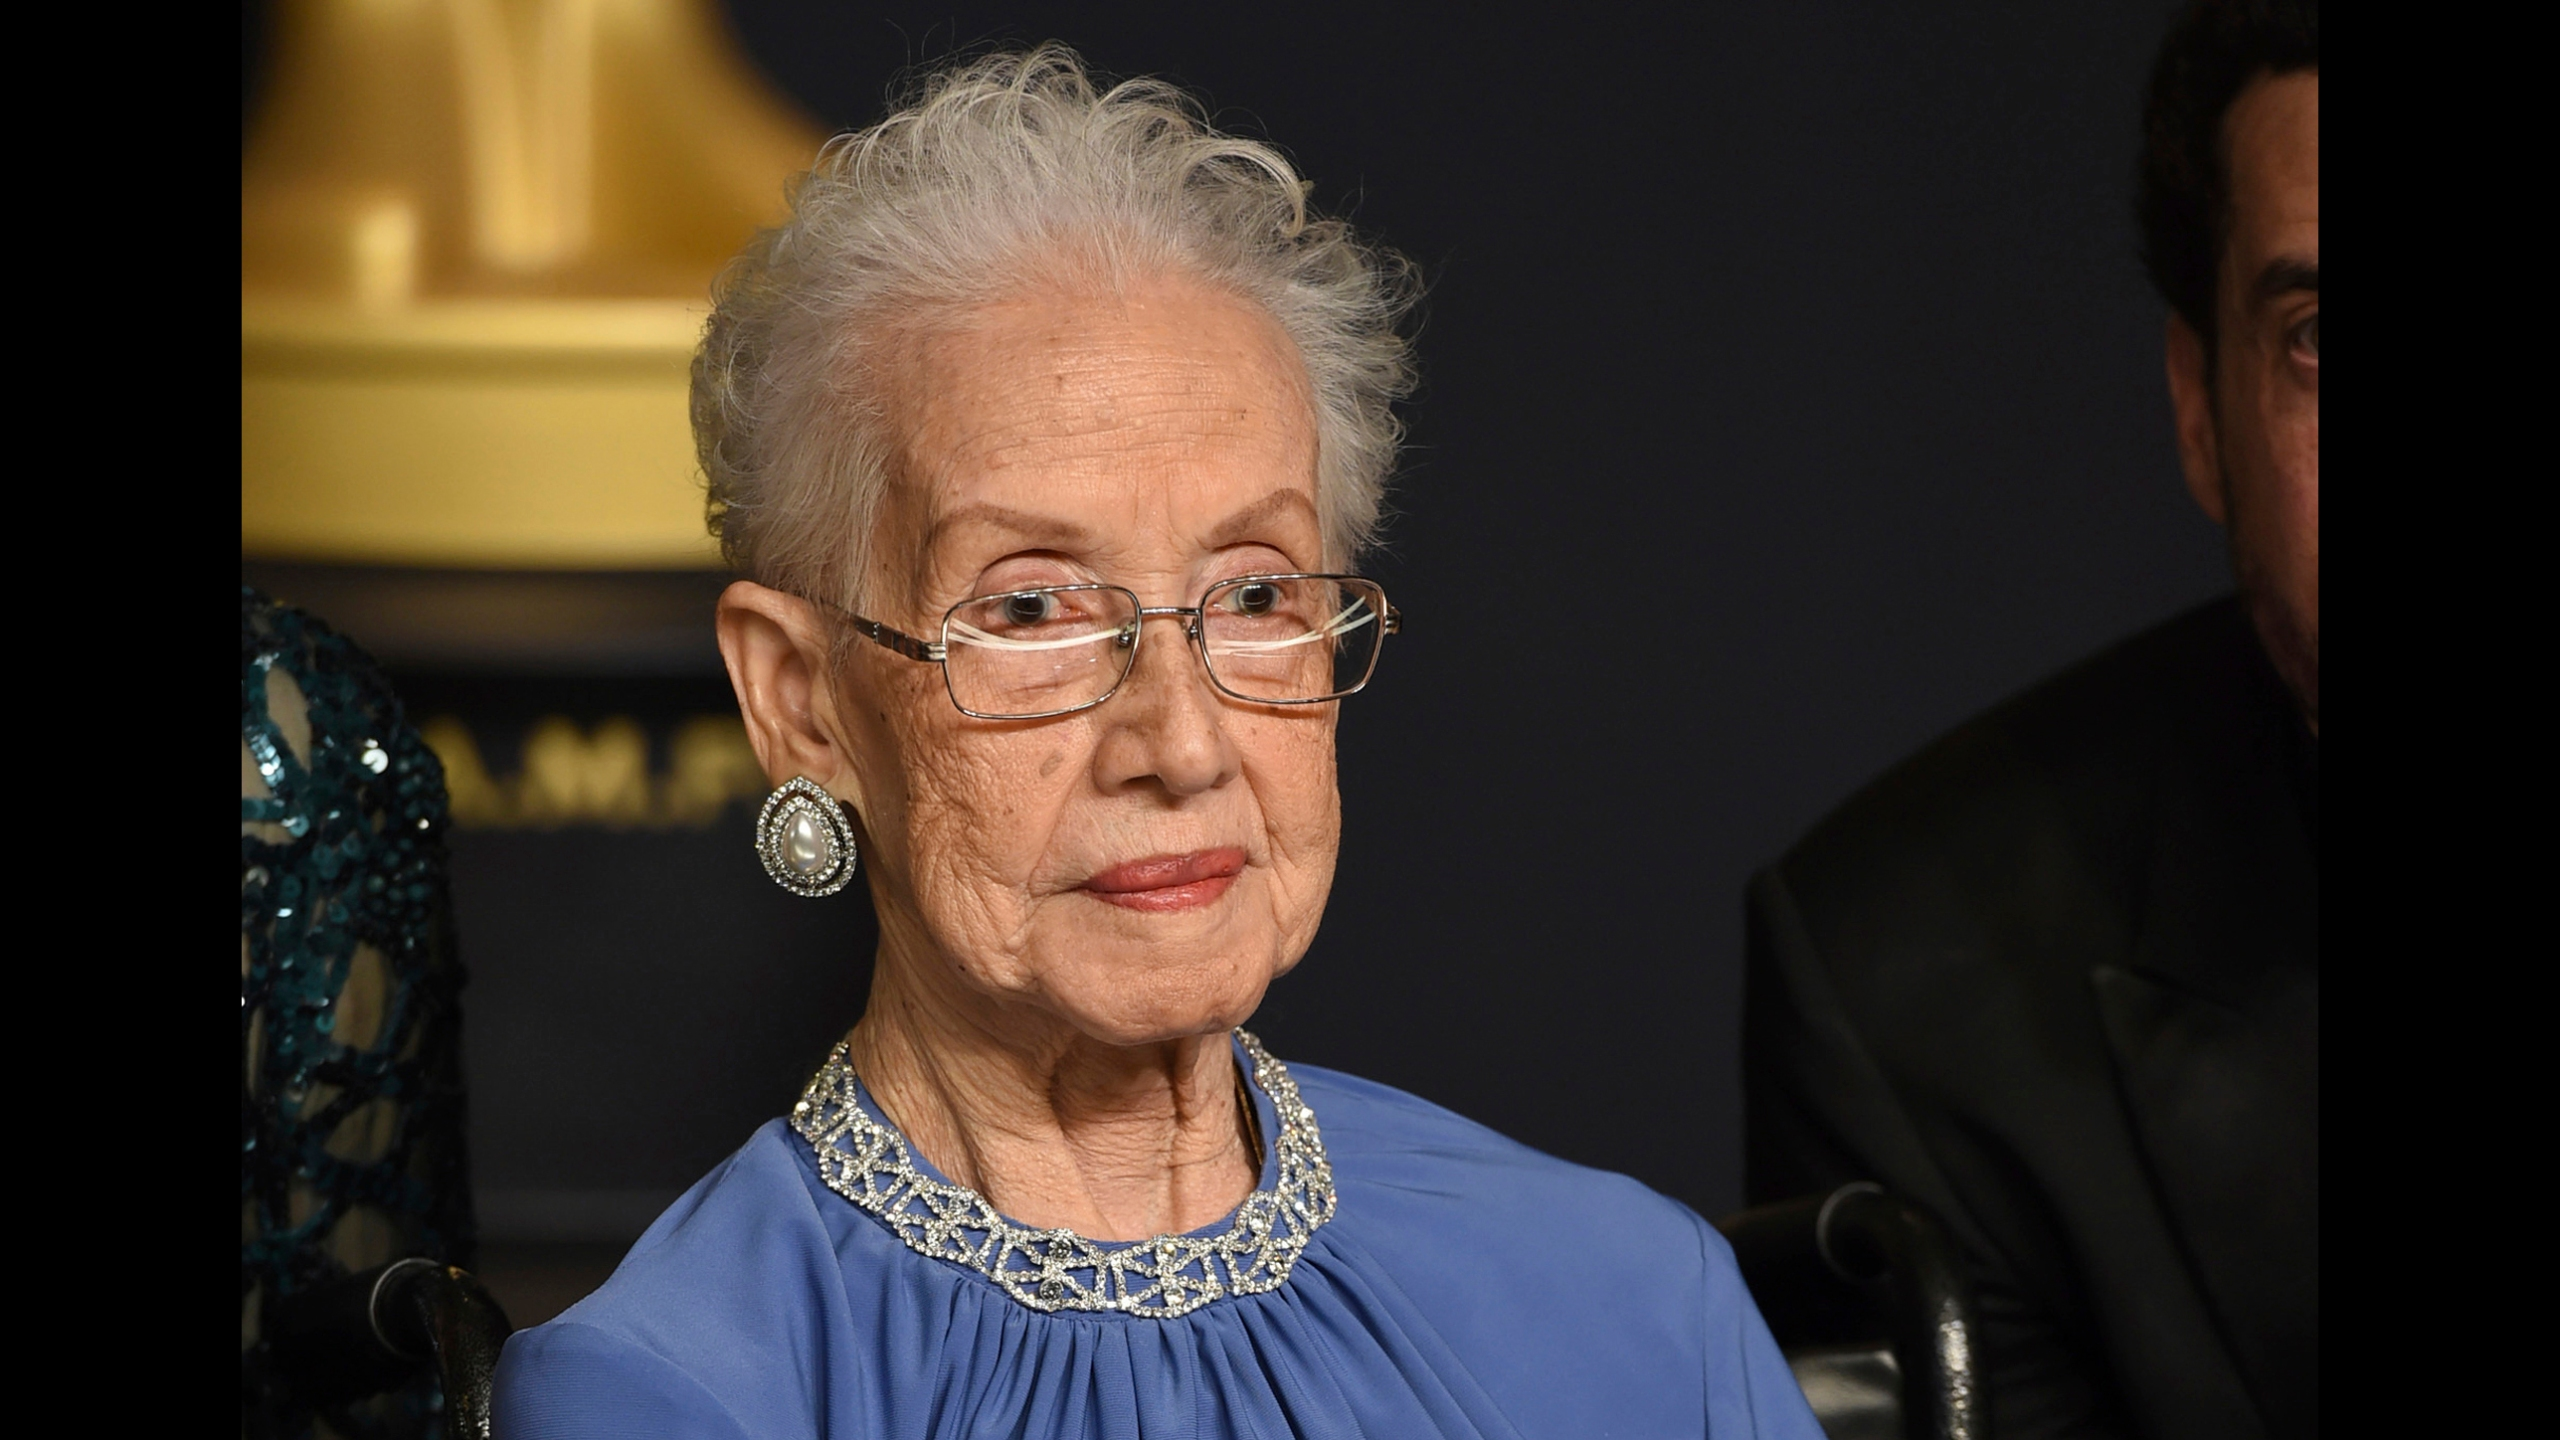 """FILE - In this Feb. 26, 2017, file photo, Katherine Johnson, the inspiration for the film, """"Hidden Figures,"""" poses in the press room at the Oscars at the Dolby Theatre in Los Angeles. (Photo by Jordan Strauss/Invision/AP, File)"""